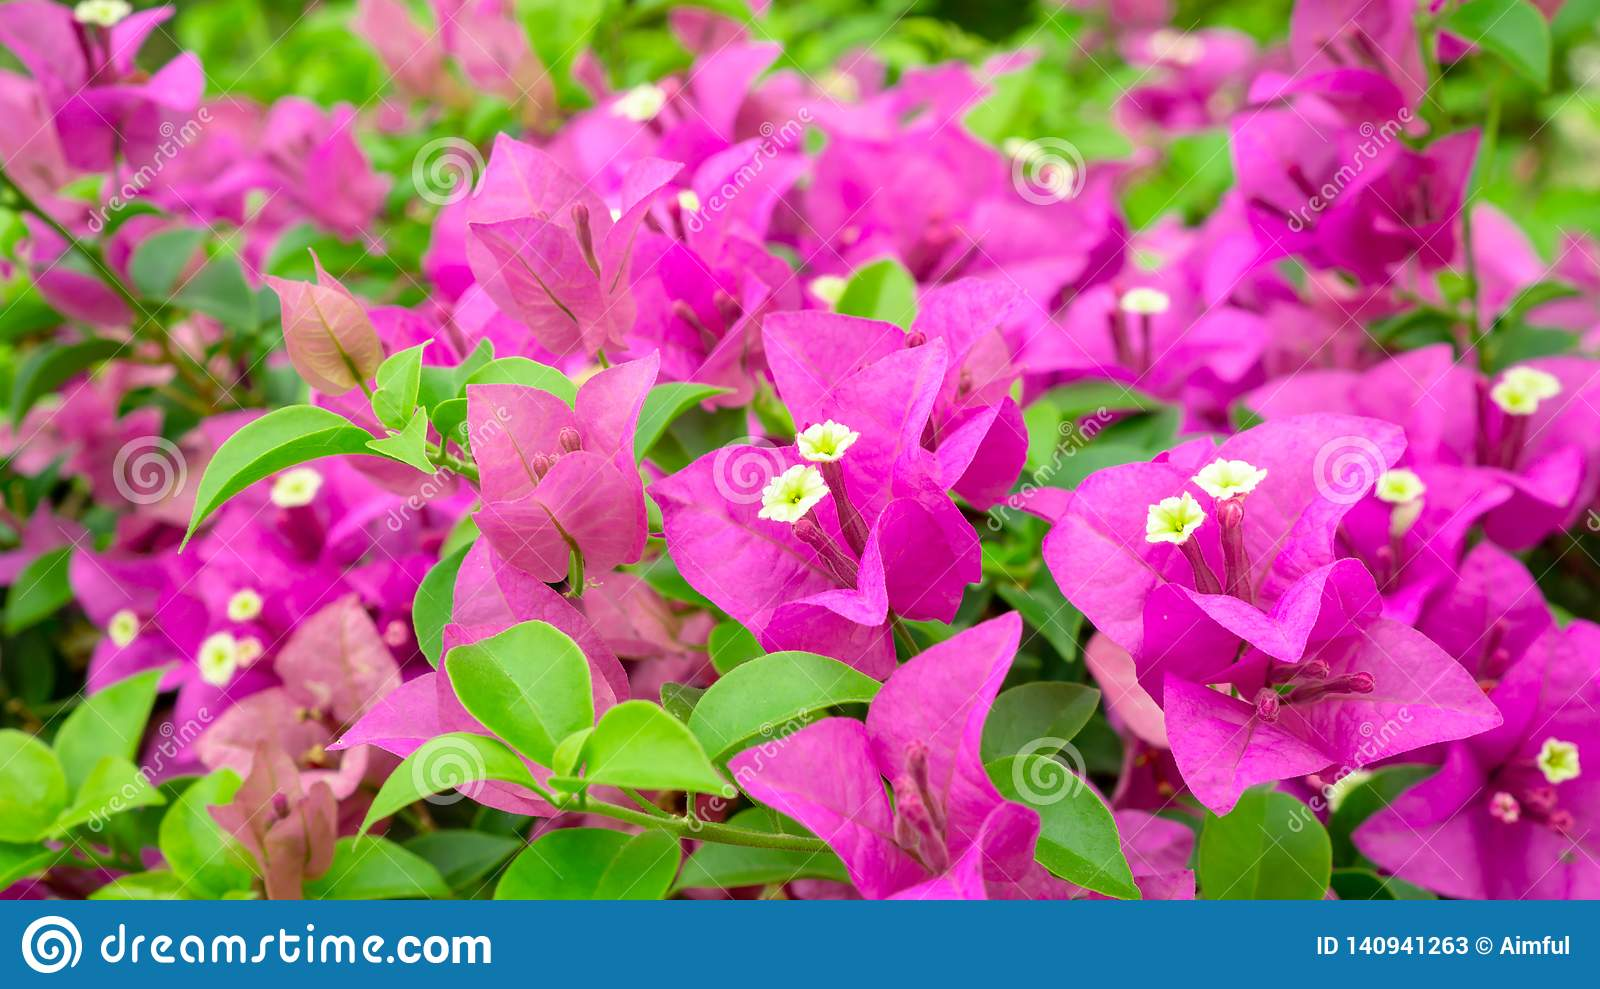 Bunches of beautiful pink Bougianvillea petals and petite white pistils on green leaves background